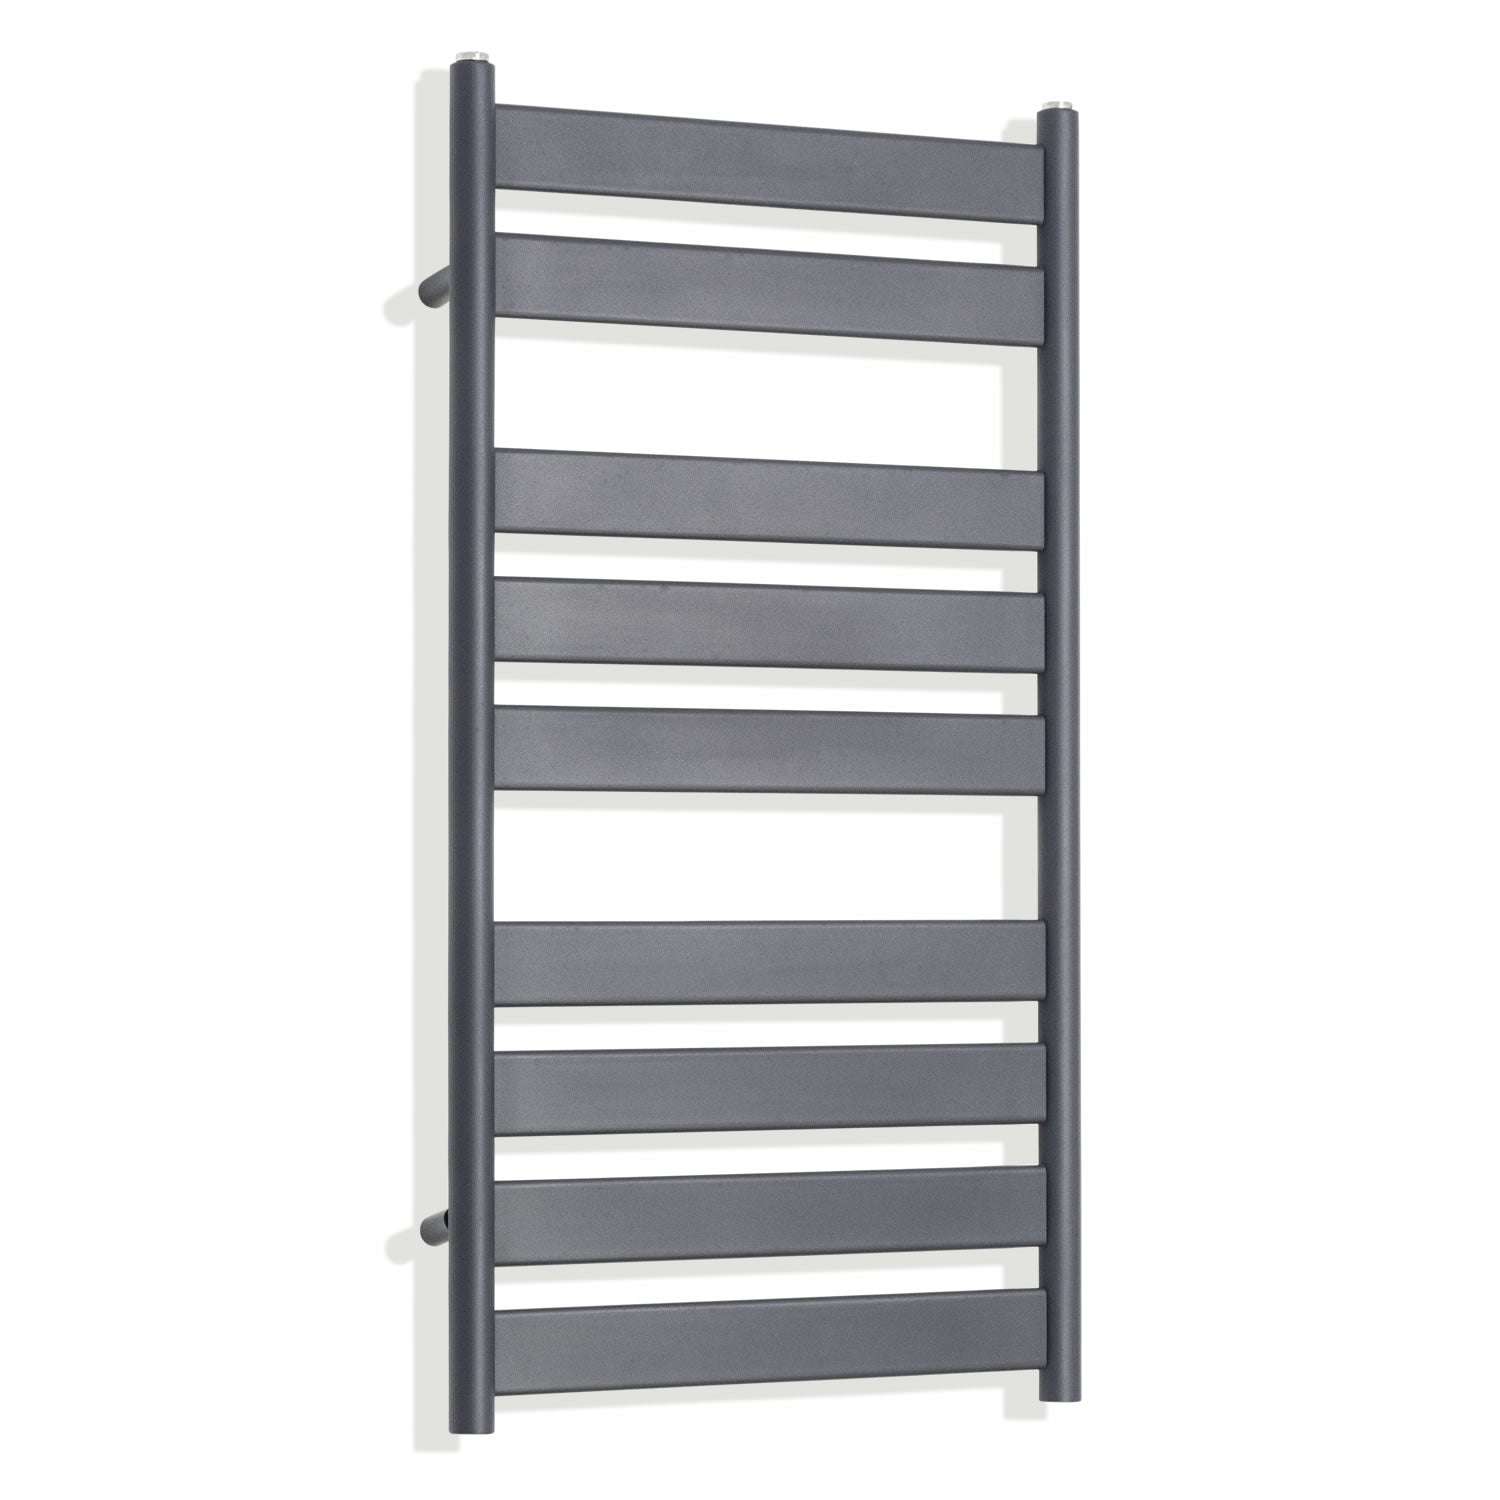 950 x 500 mm Anthracite Heated Flat Panel Towel Rail Radiator Central heating